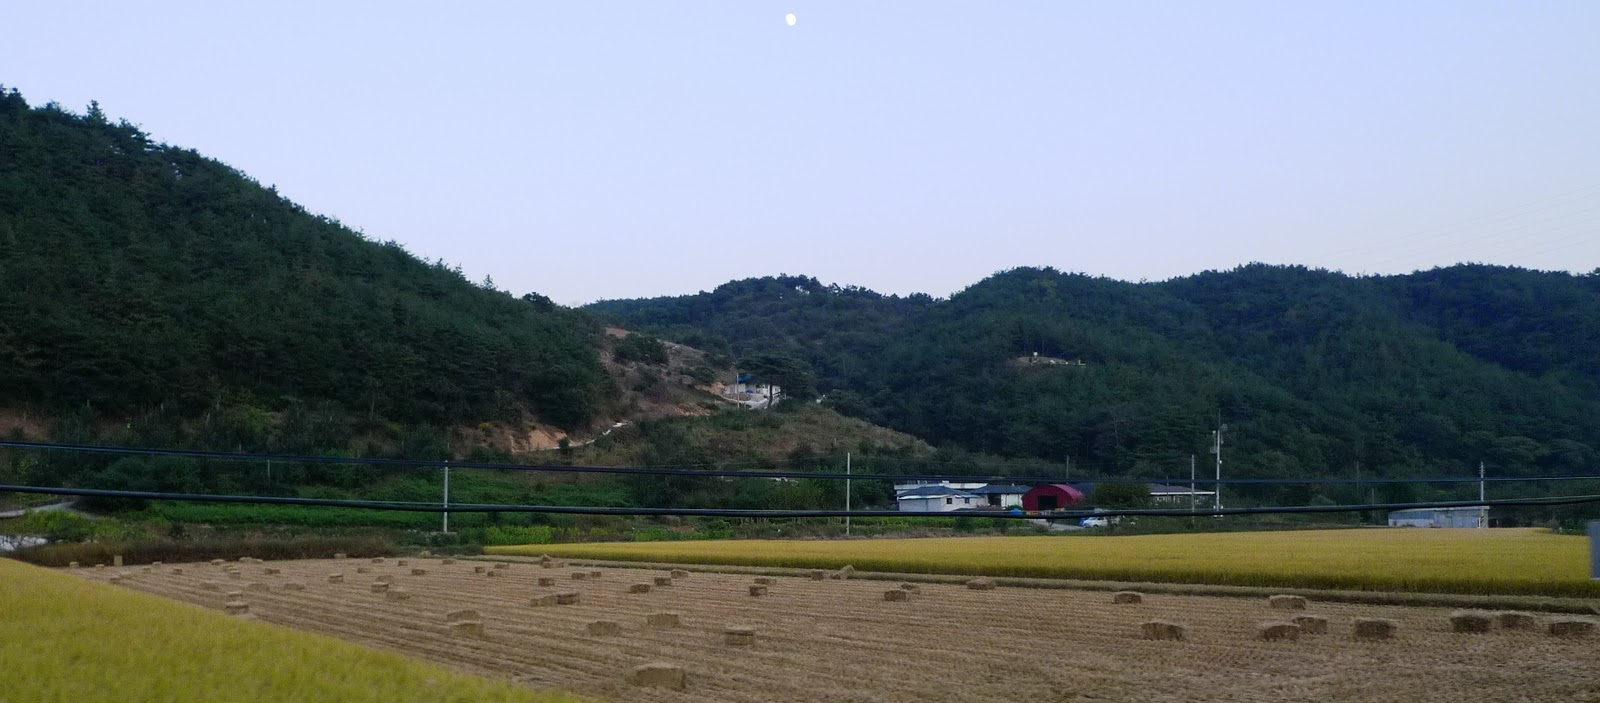 Sancheong-gun South Korea  City new picture : ... ベイルハウス Straw Bale Homes in Sancheong, South Korea